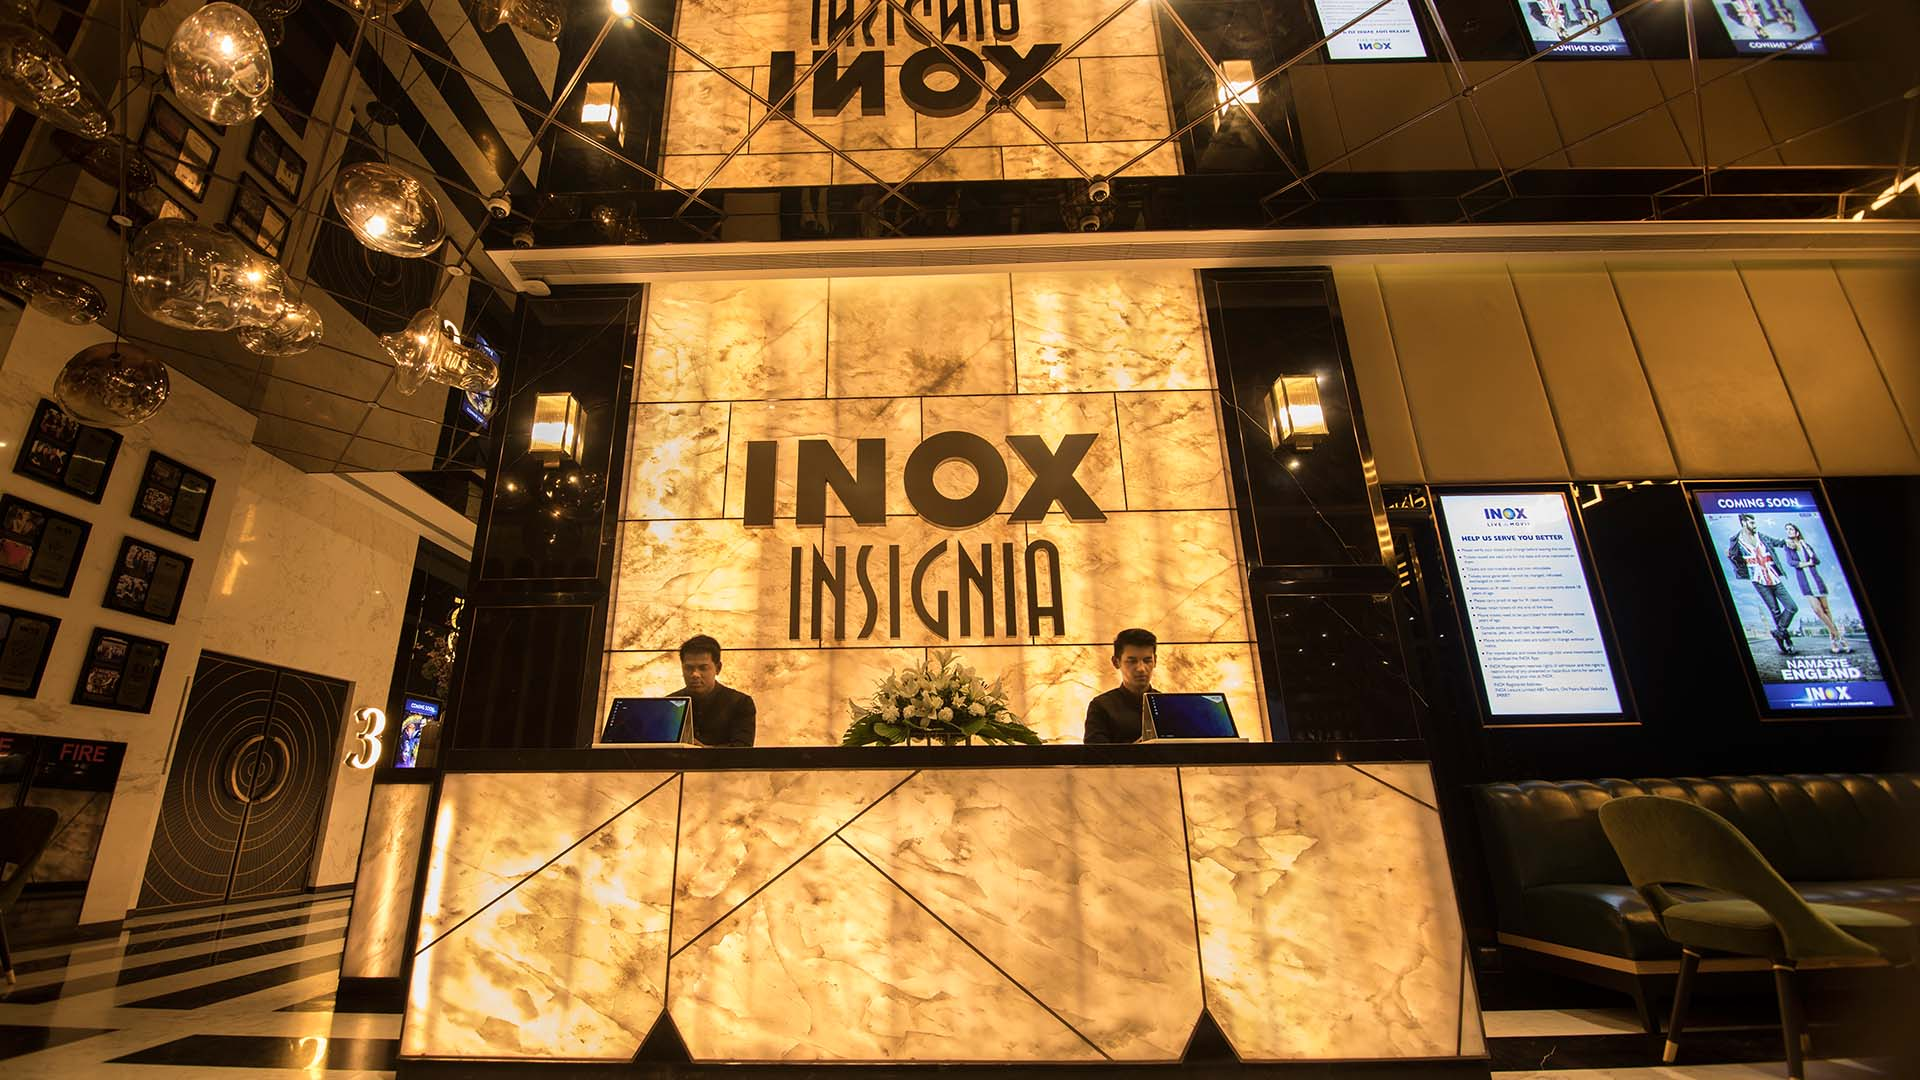 inox-insignia-photos-15